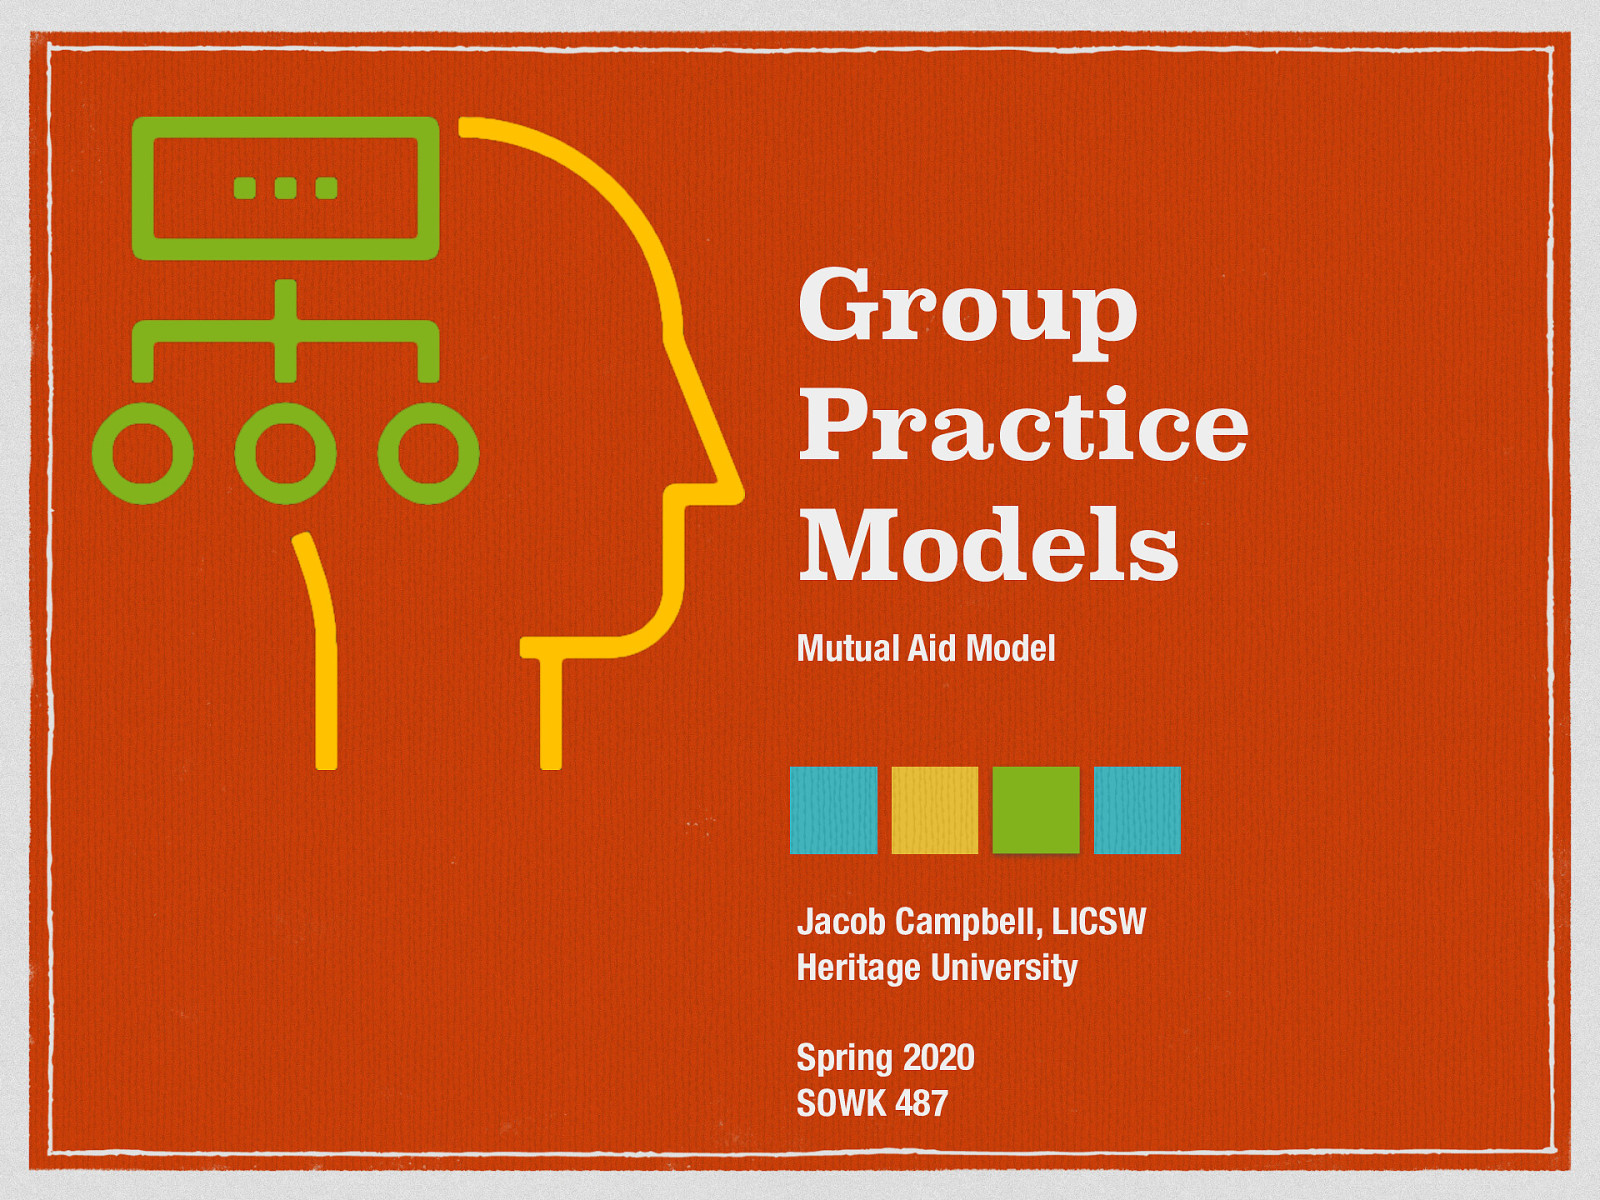 Week 04 - Group Practice Models - Mutual Aid